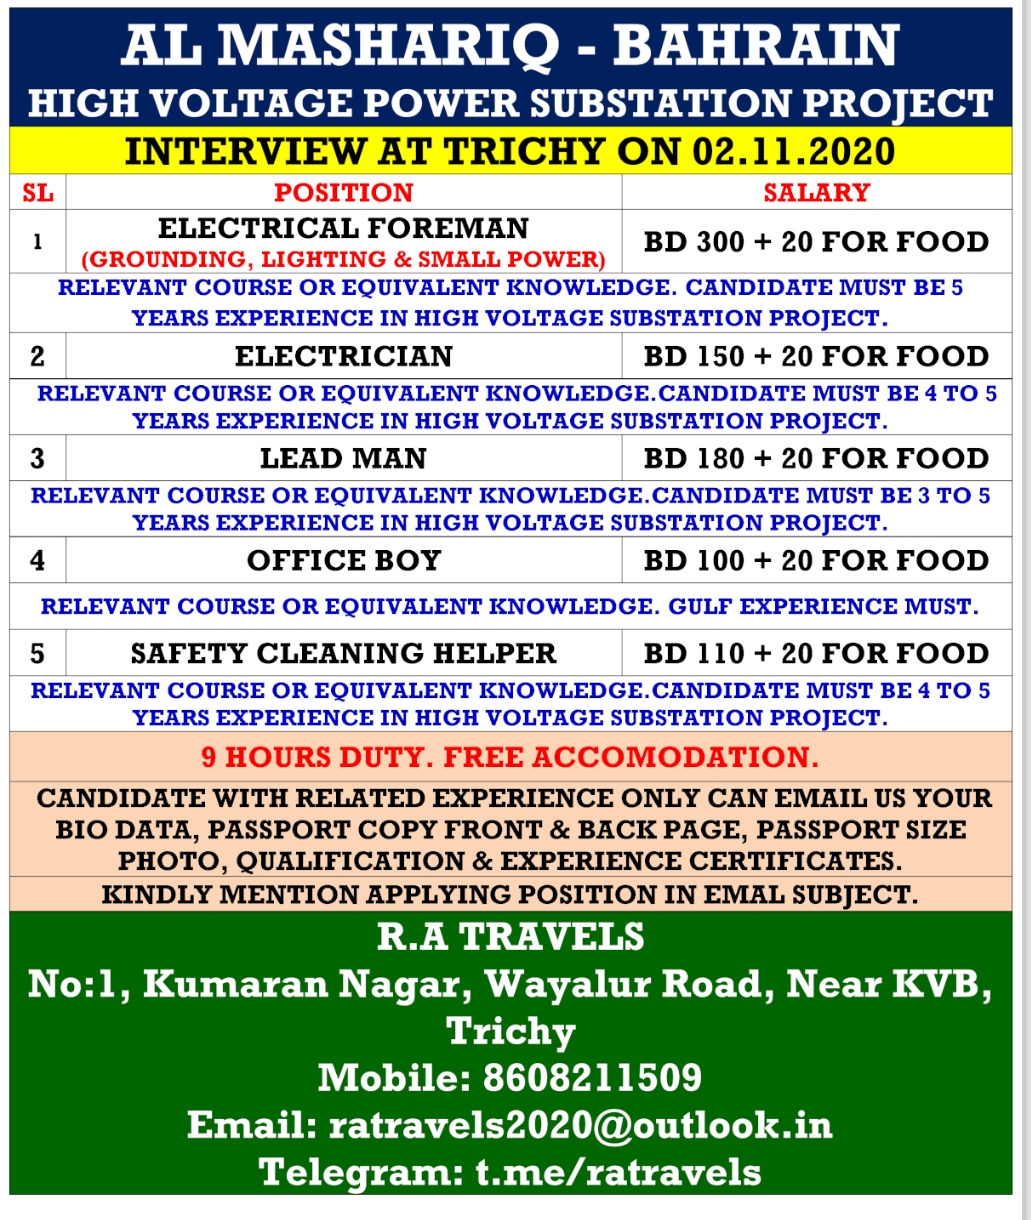 WALK-IN INTERVIEW AT TRICHY FOR BAHRAIN HIGH VOLTAGE POWER SUBSTATION PROJECT